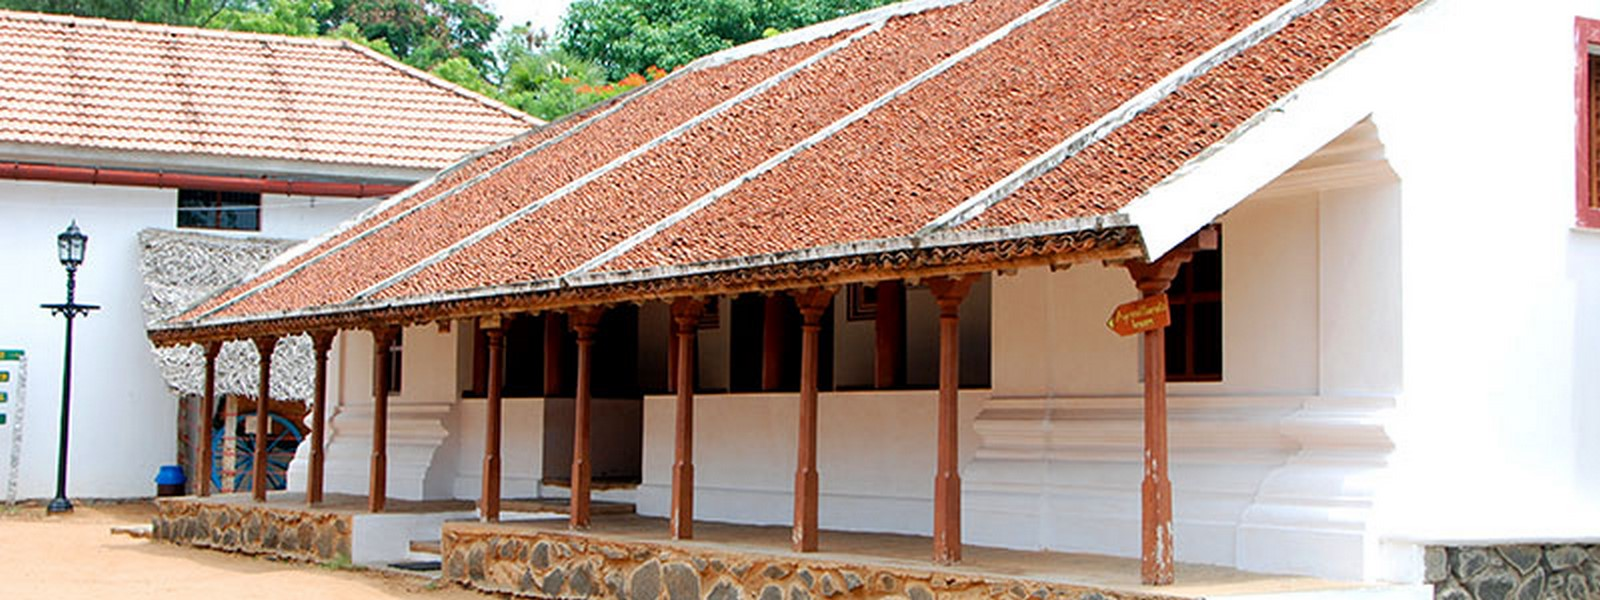 10 Examples of Vernacular architecture in South India - Sheet3